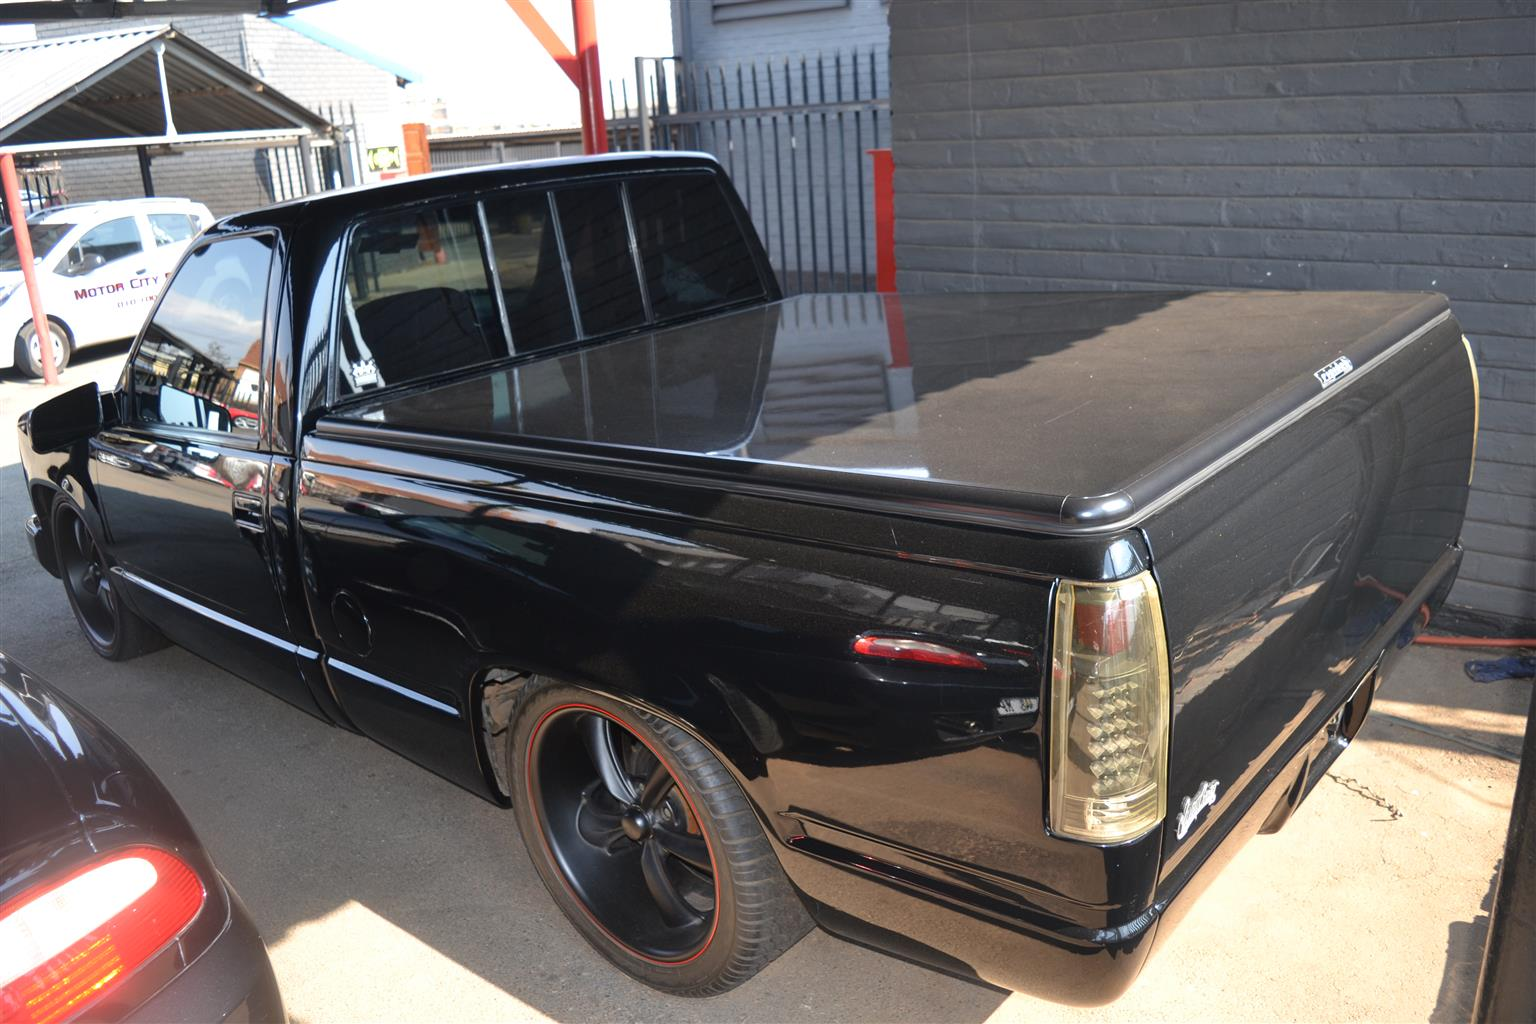 1988 Chev Silverado 1500 For Sale - R249 000.00